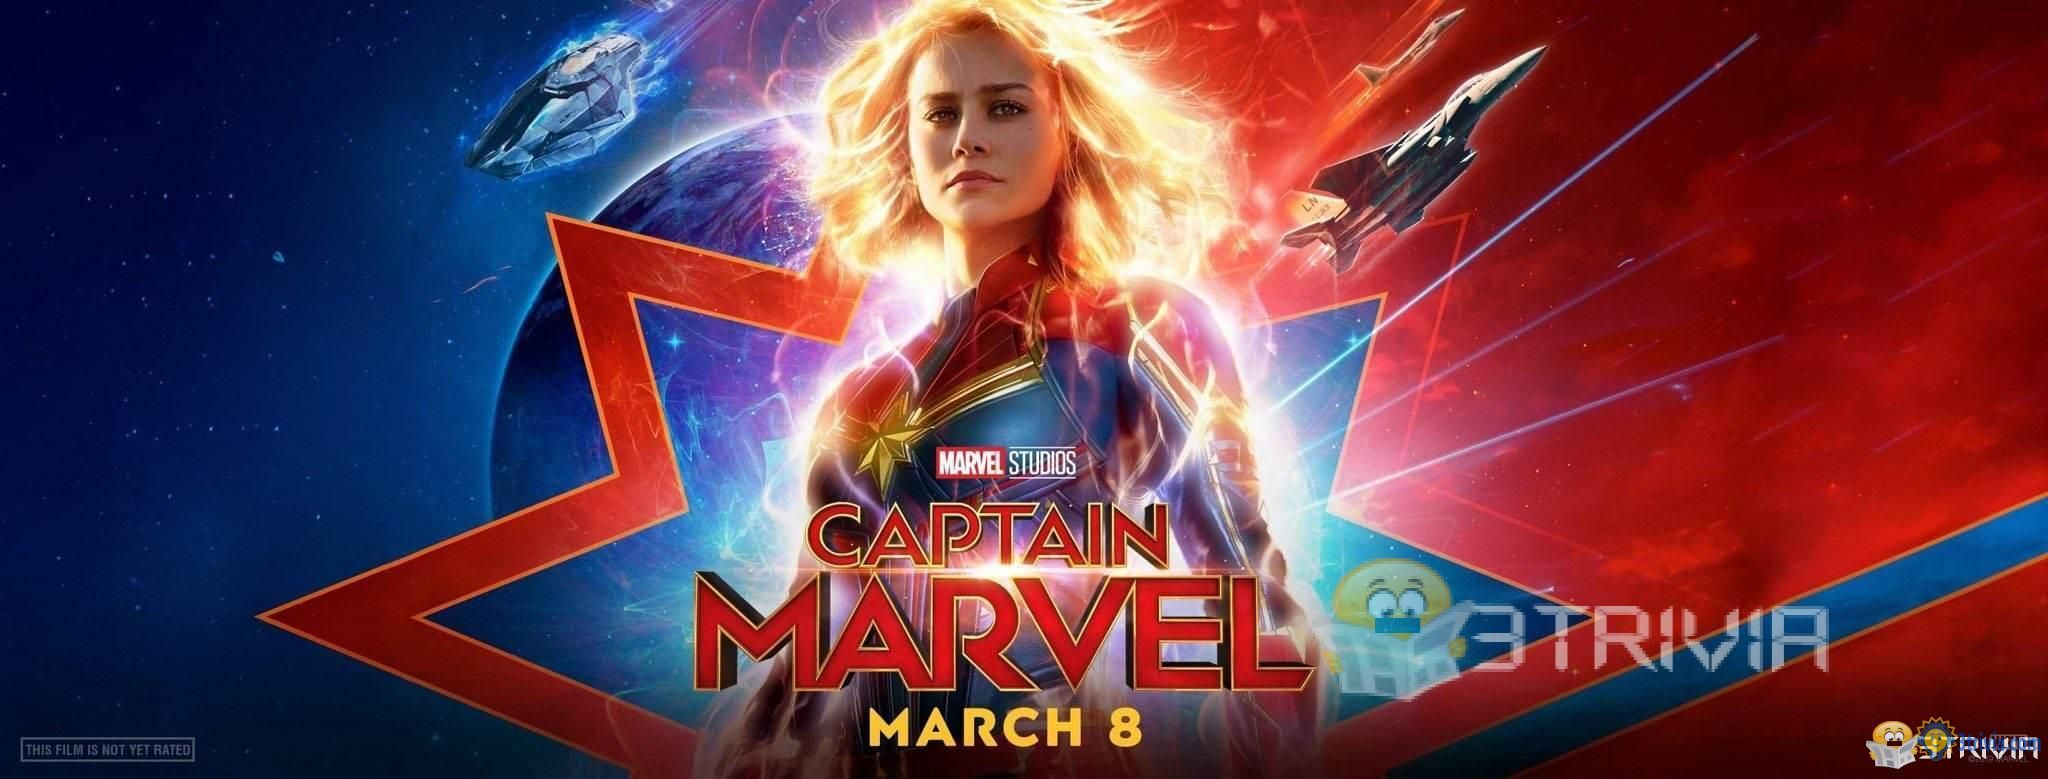 Captain Marvel gave birth to her husband